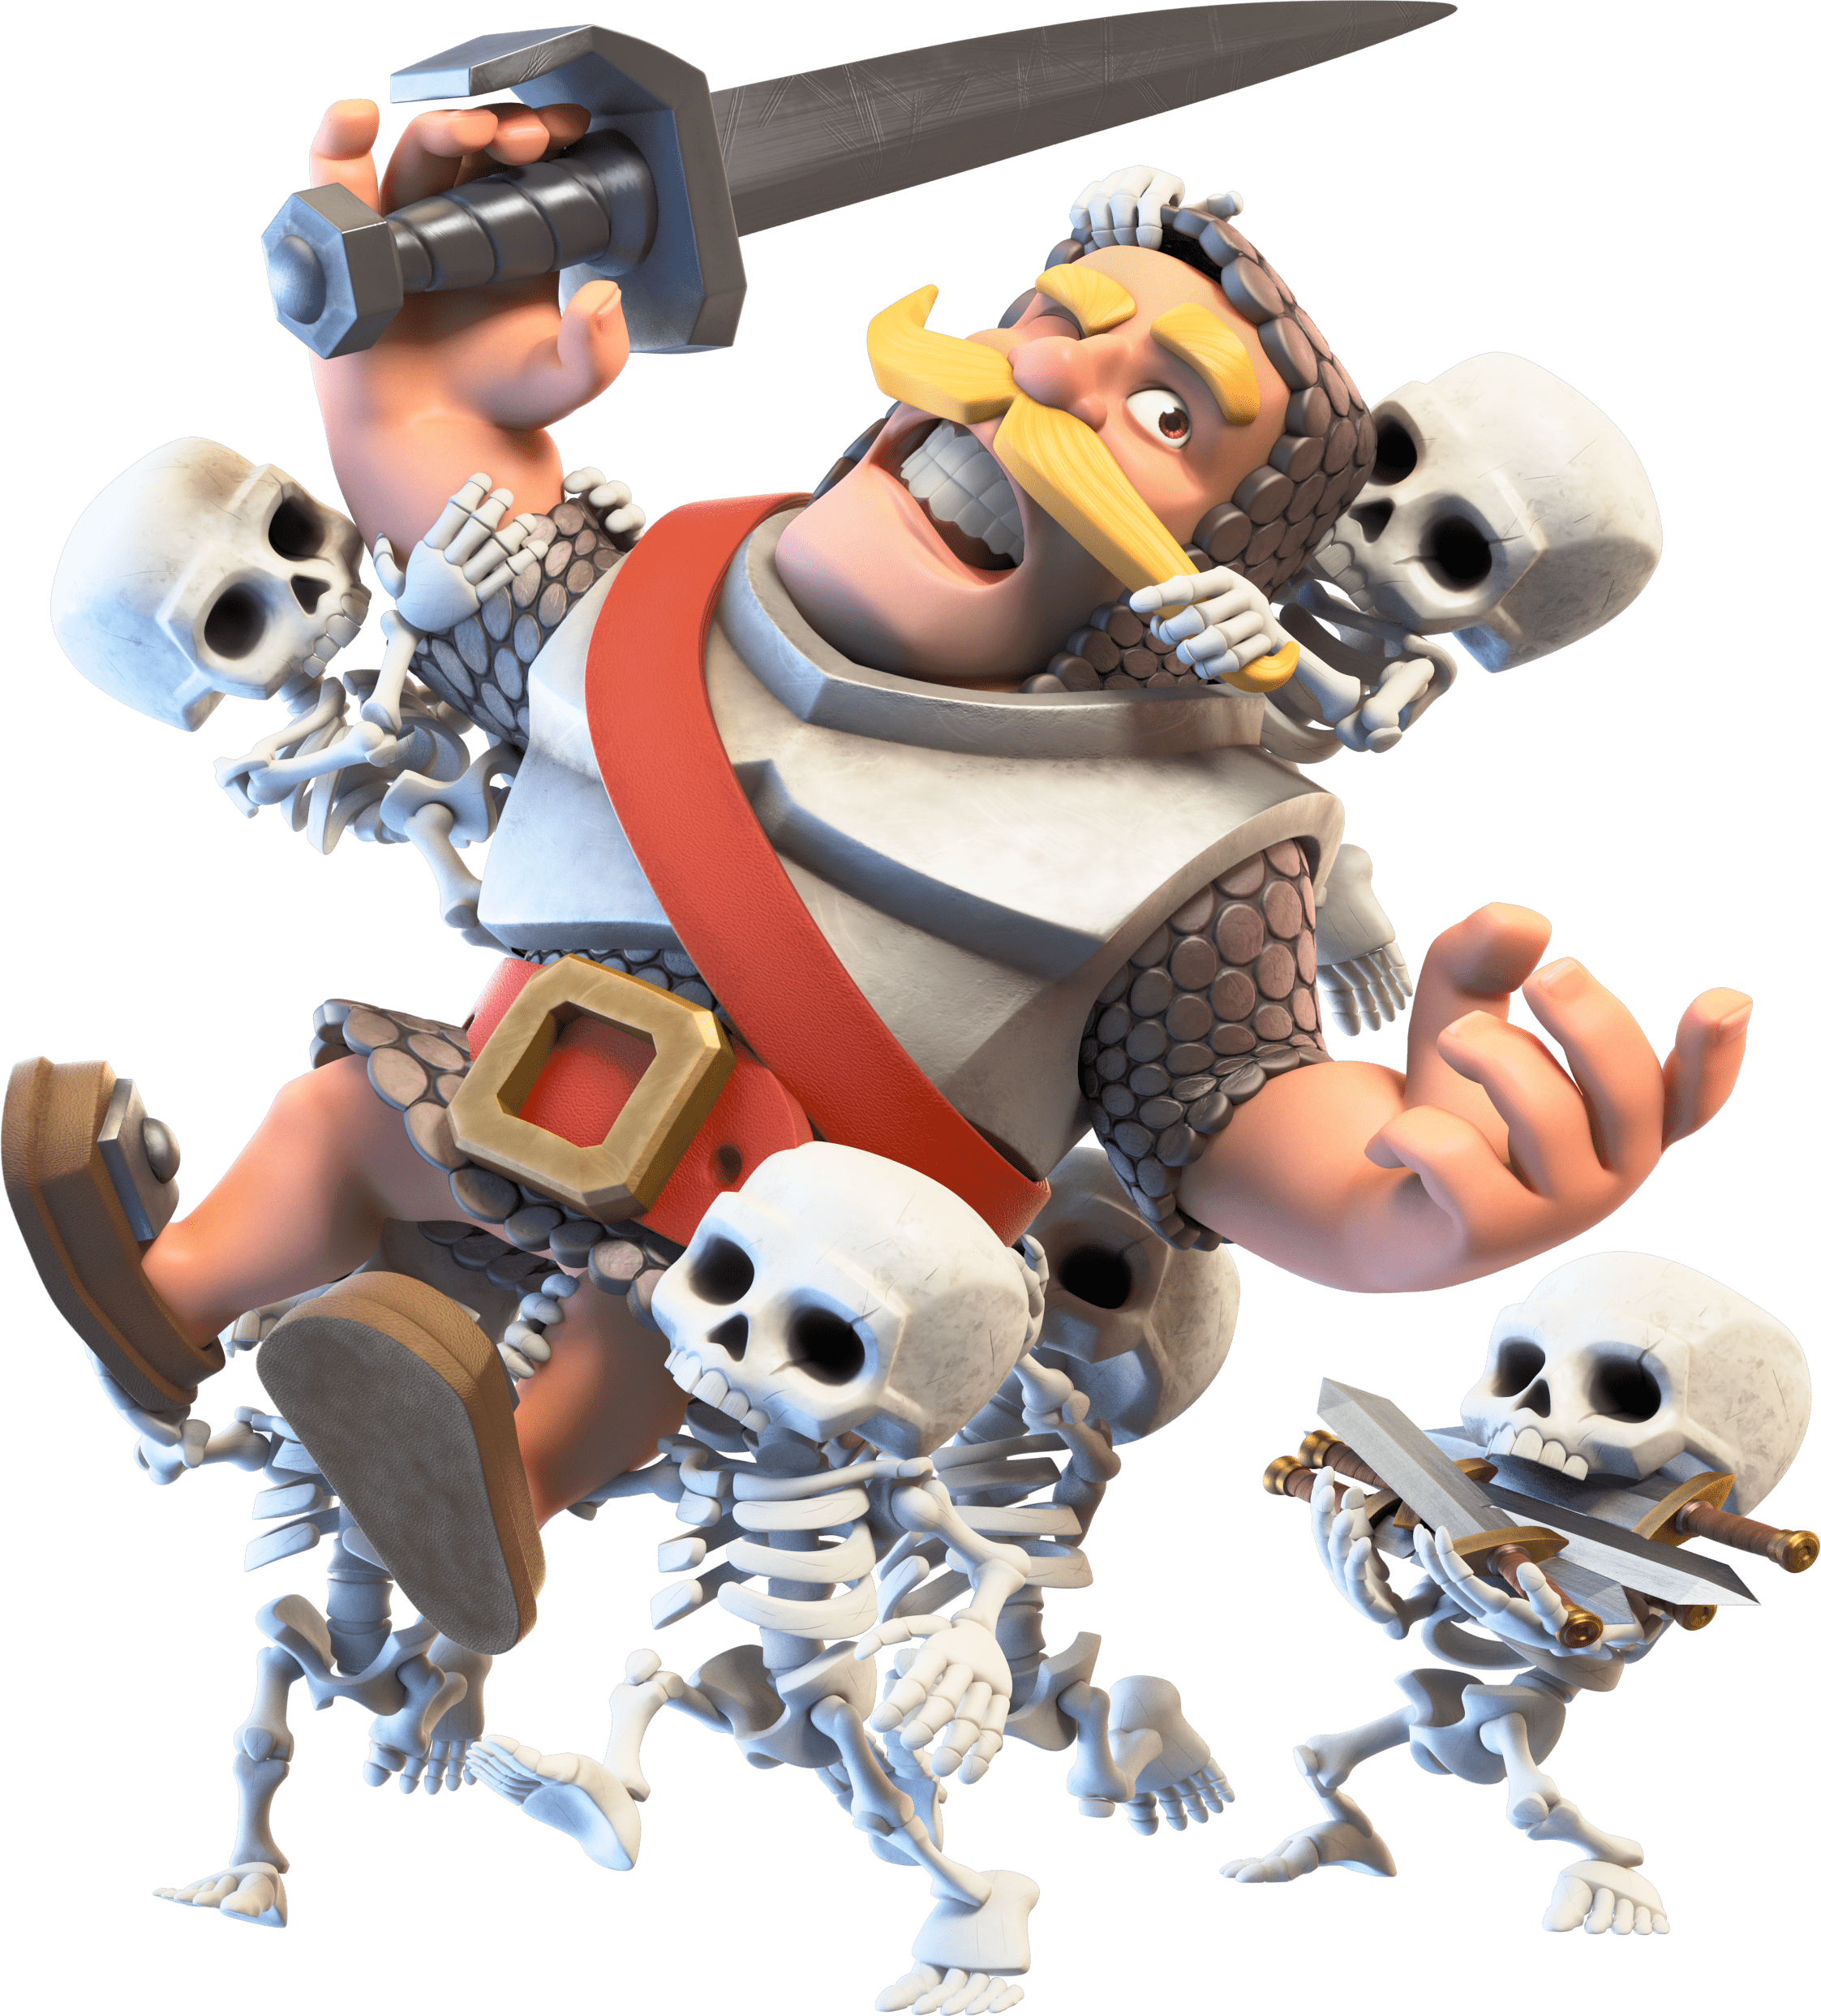 High-quality Clash Royale Transparent Png Images image #46142